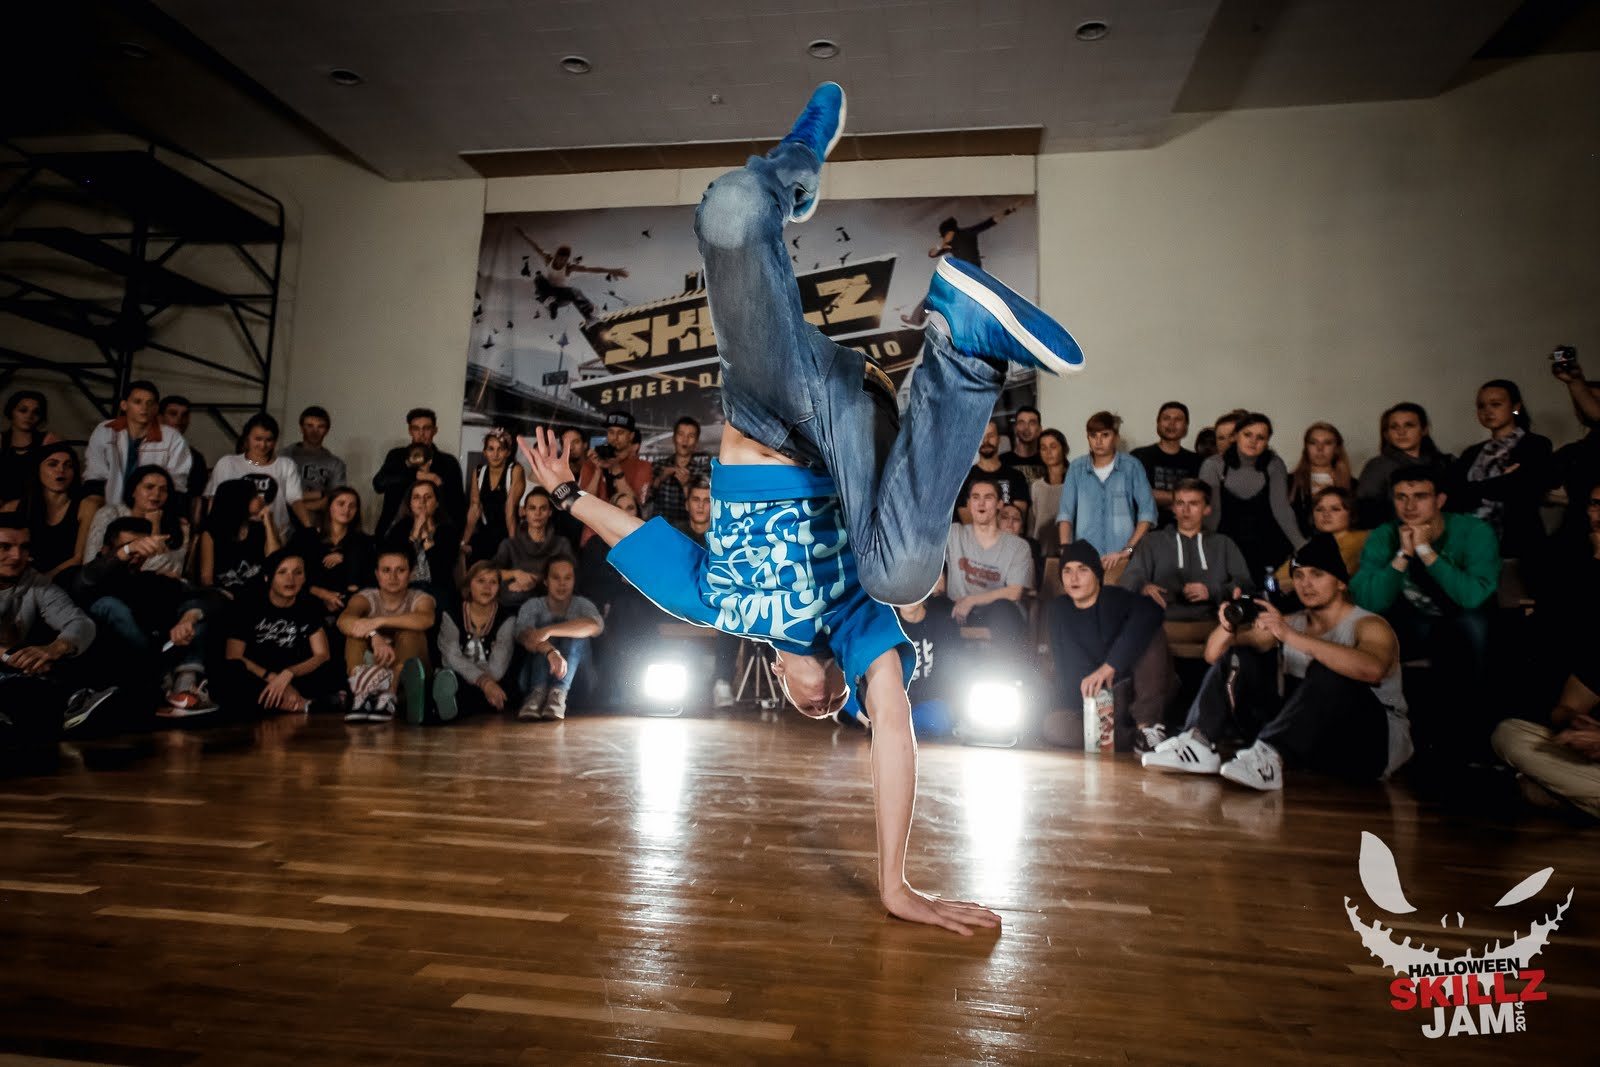 SKILLZ Halloween Jam Battles - a_MG_2487.jpg